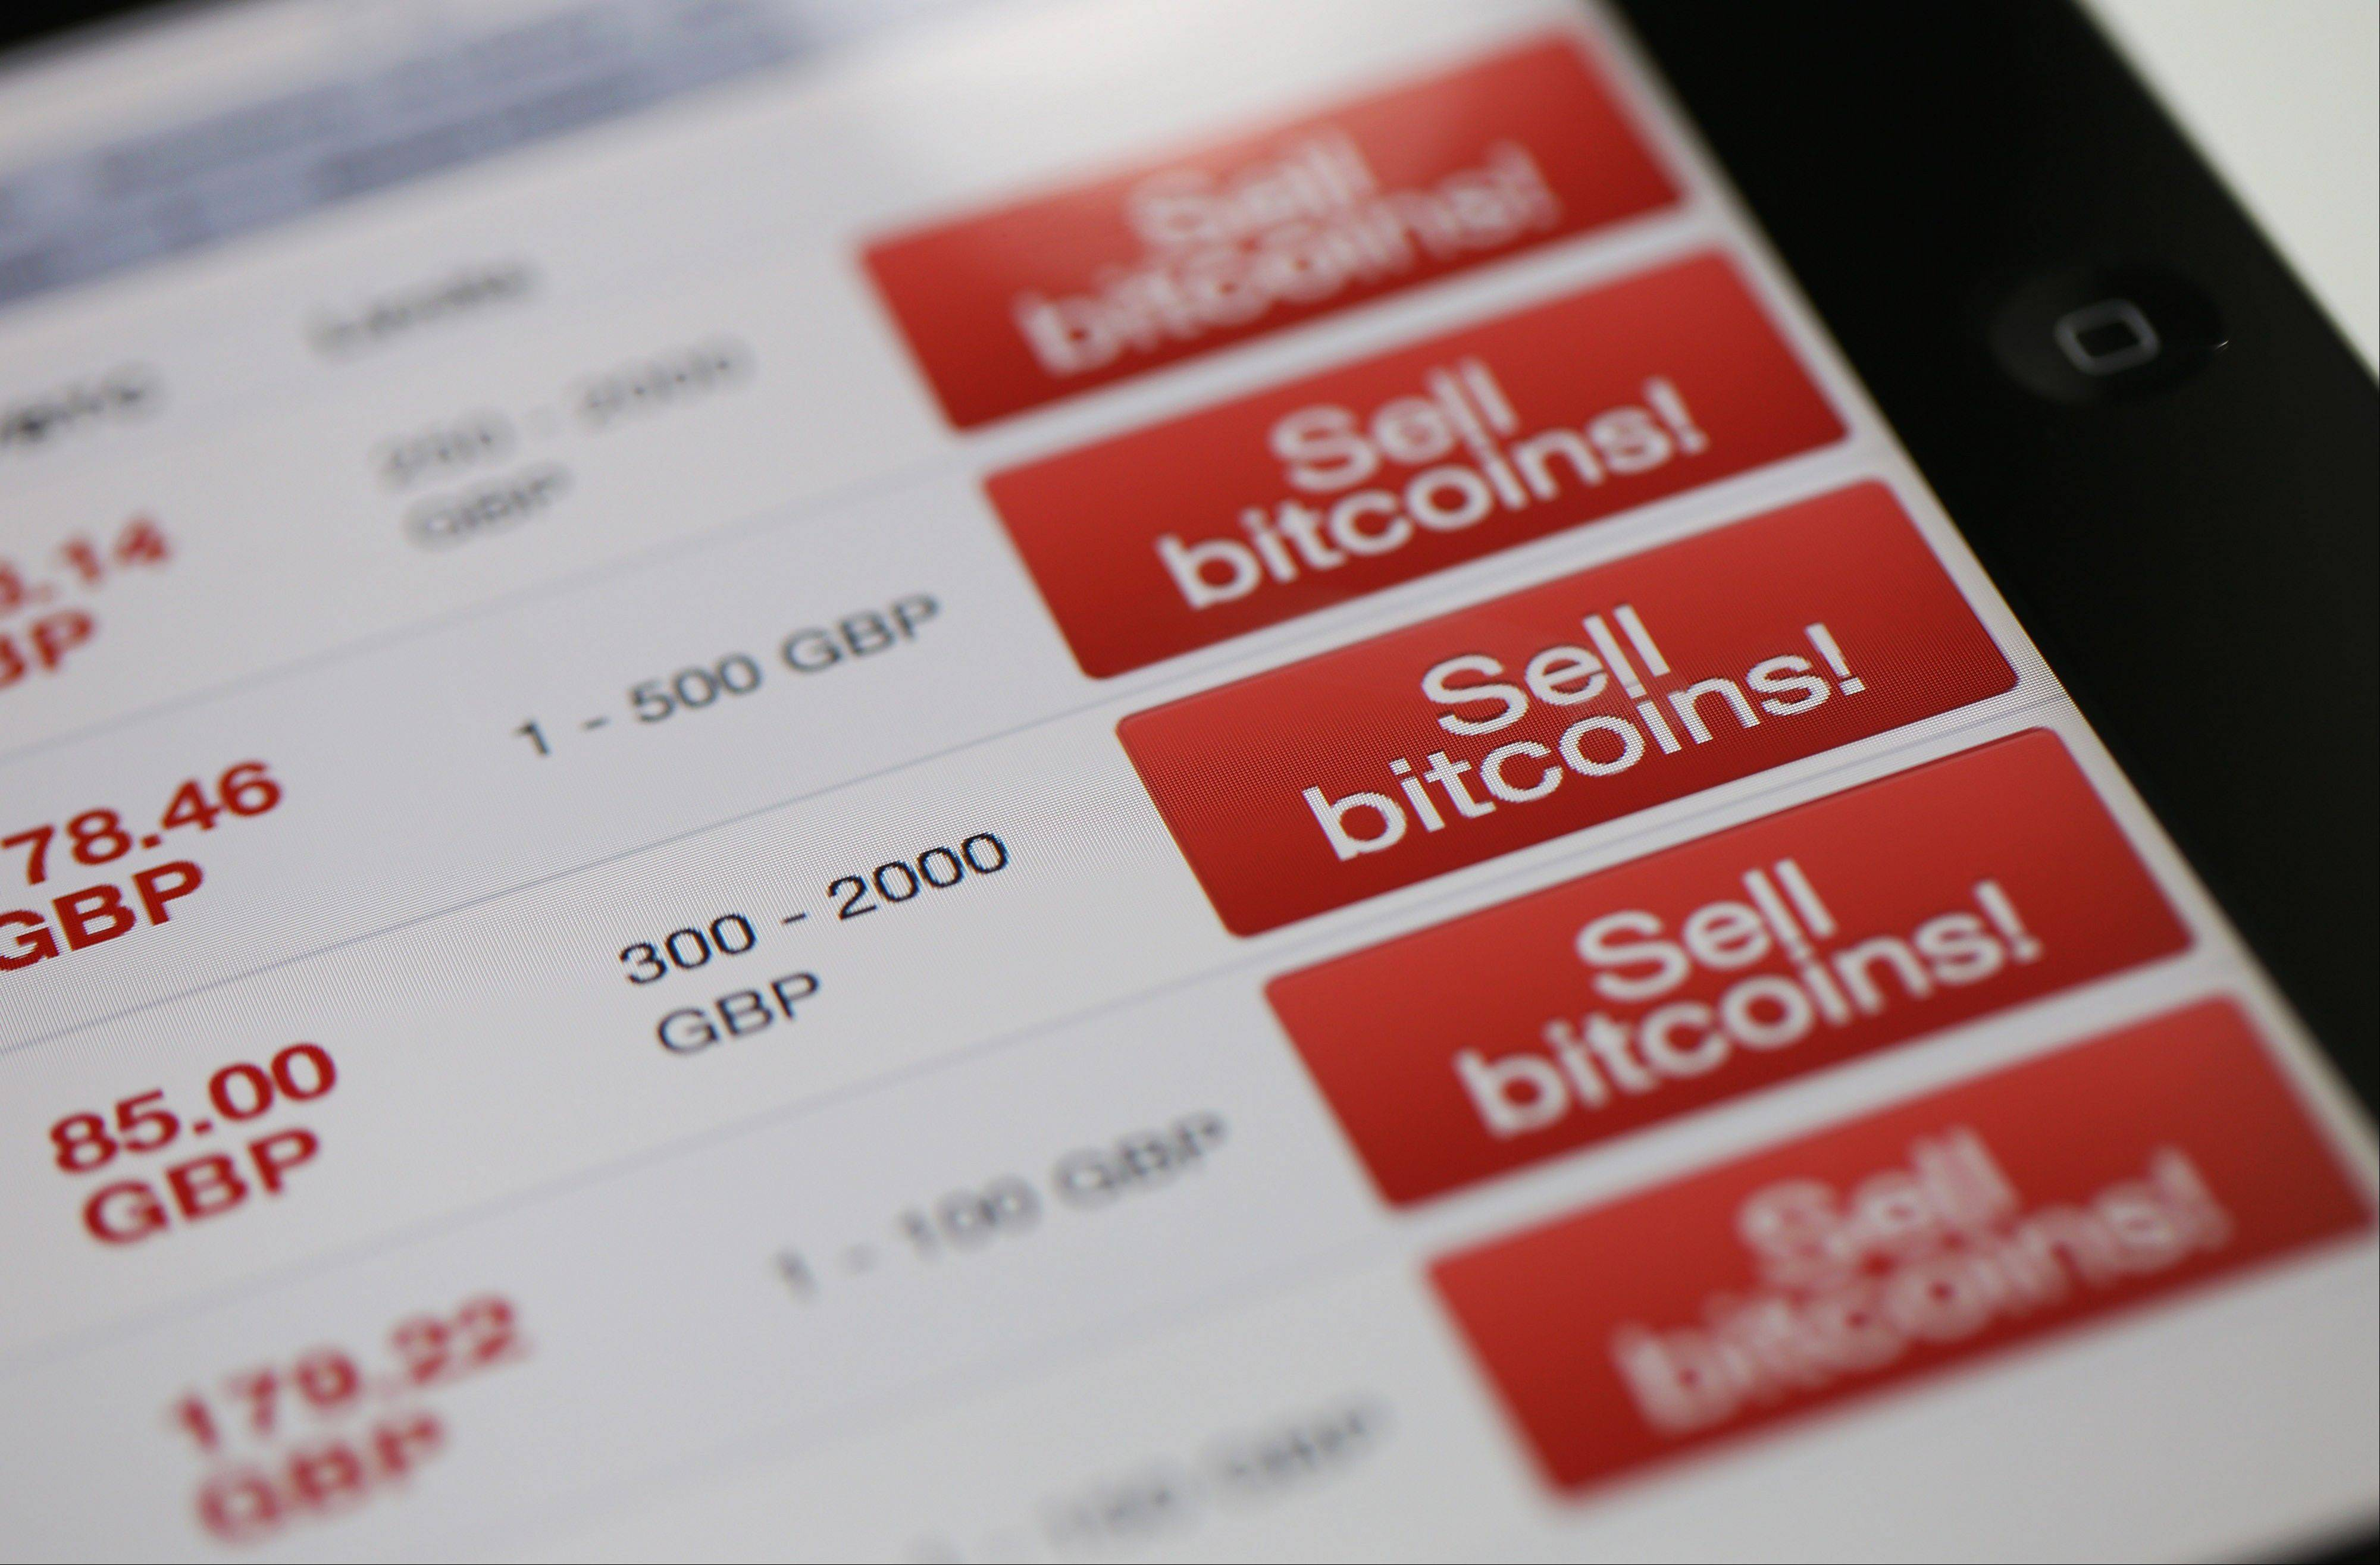 A computer screen displays Bitcoin currency exchange rates for the British pound on an internet website in London, U.K., on Wednesday, April 10, 2013. Bitcoin, developed in 2009 by a mysterious programmer known as Satoshi Nakamoto, is a form of virtual cash that�s made secure by complex computations and isn�t backed by any government.